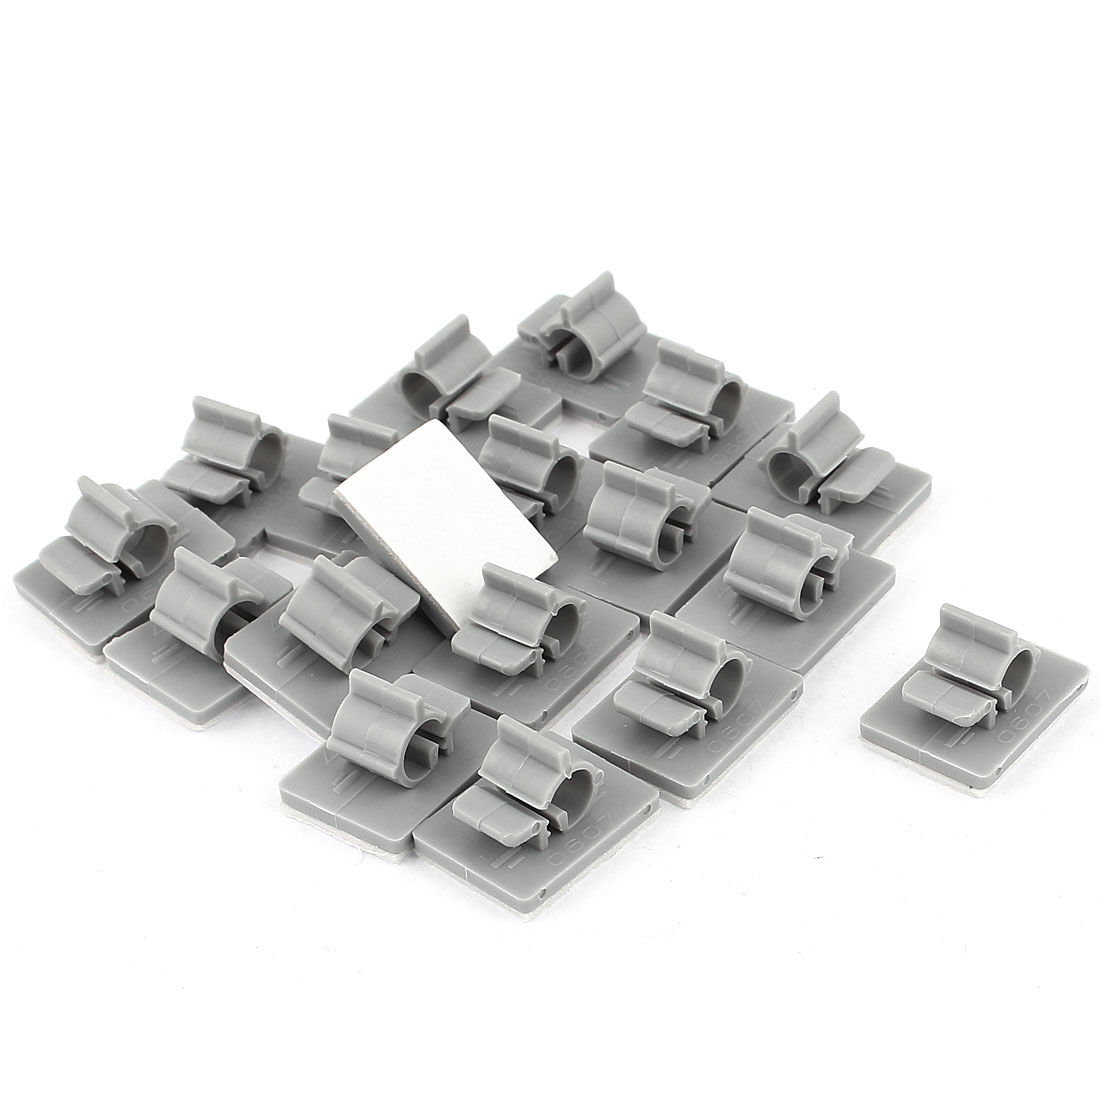 Self Adhesive Zip Tie Mounts Cable Clip Clamp Wire Holder